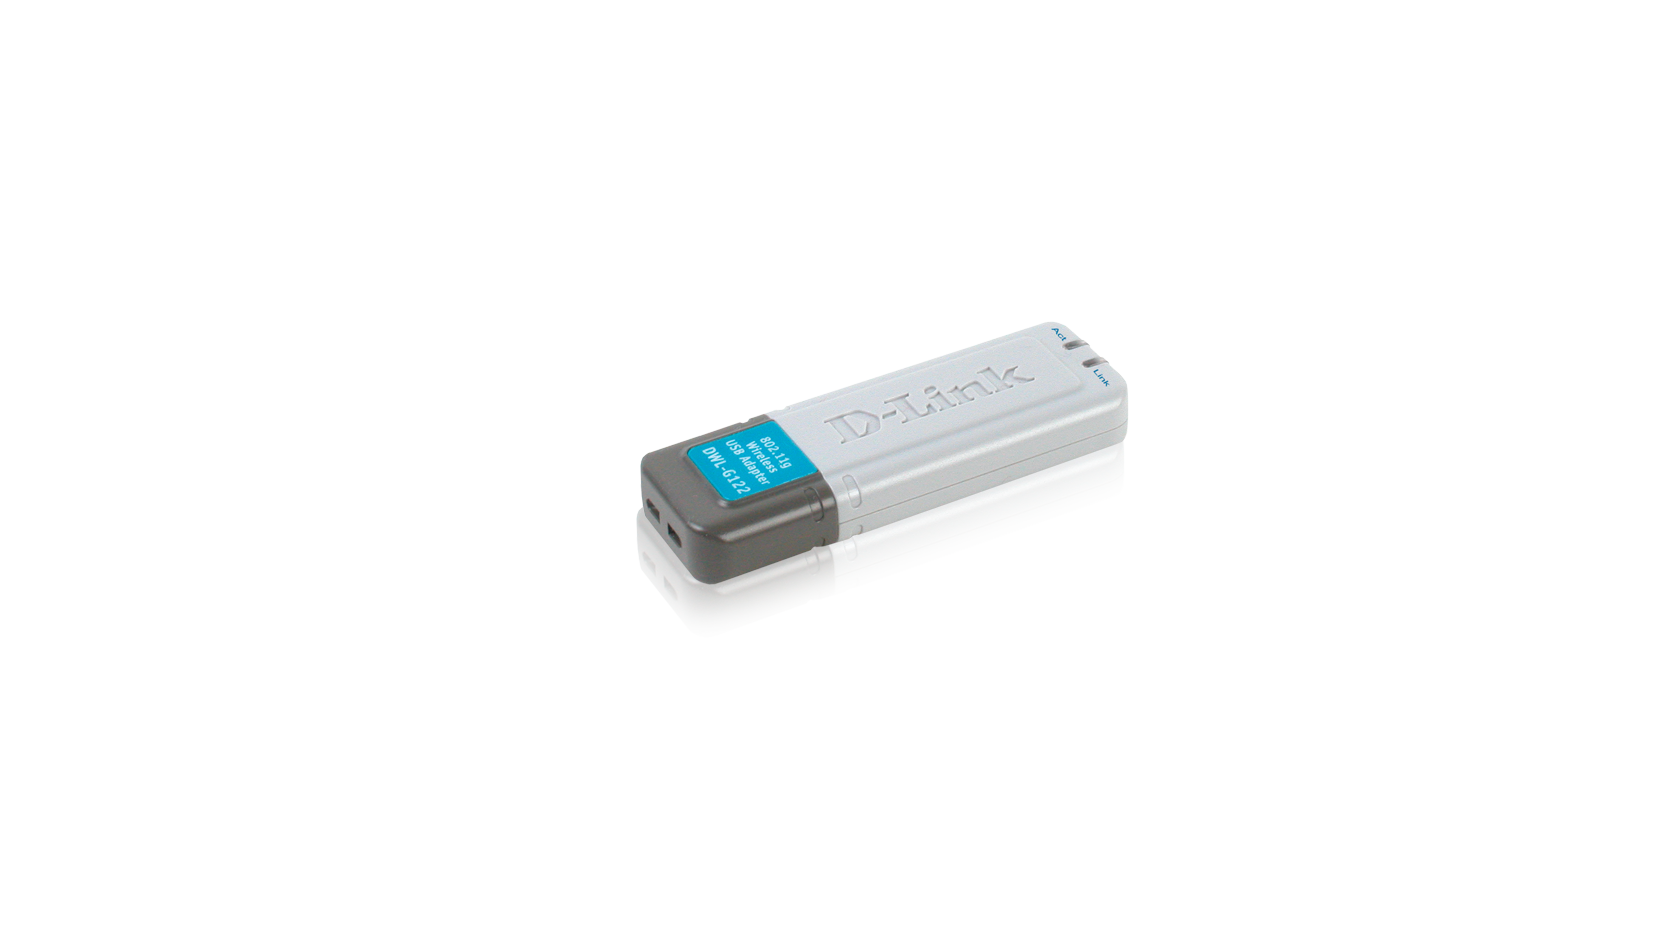 D-Link AirPlus G DWL-G122 Wireless Adapter Download Drivers